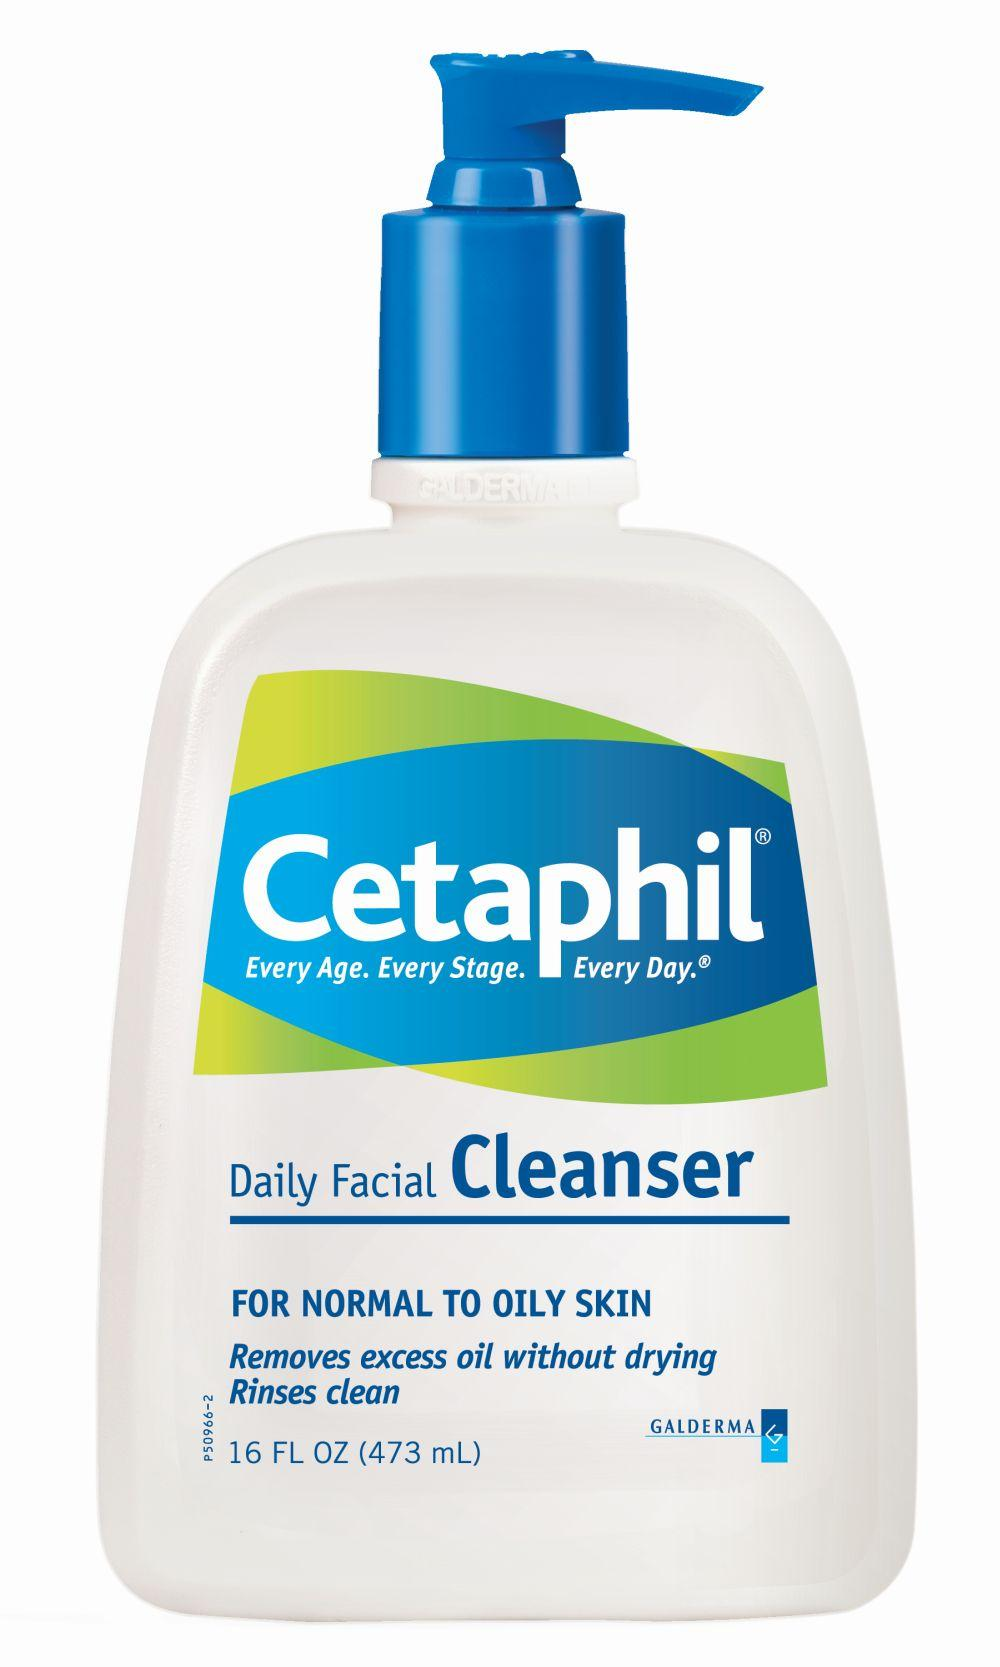 How to use cetaphil daily facial cleanser